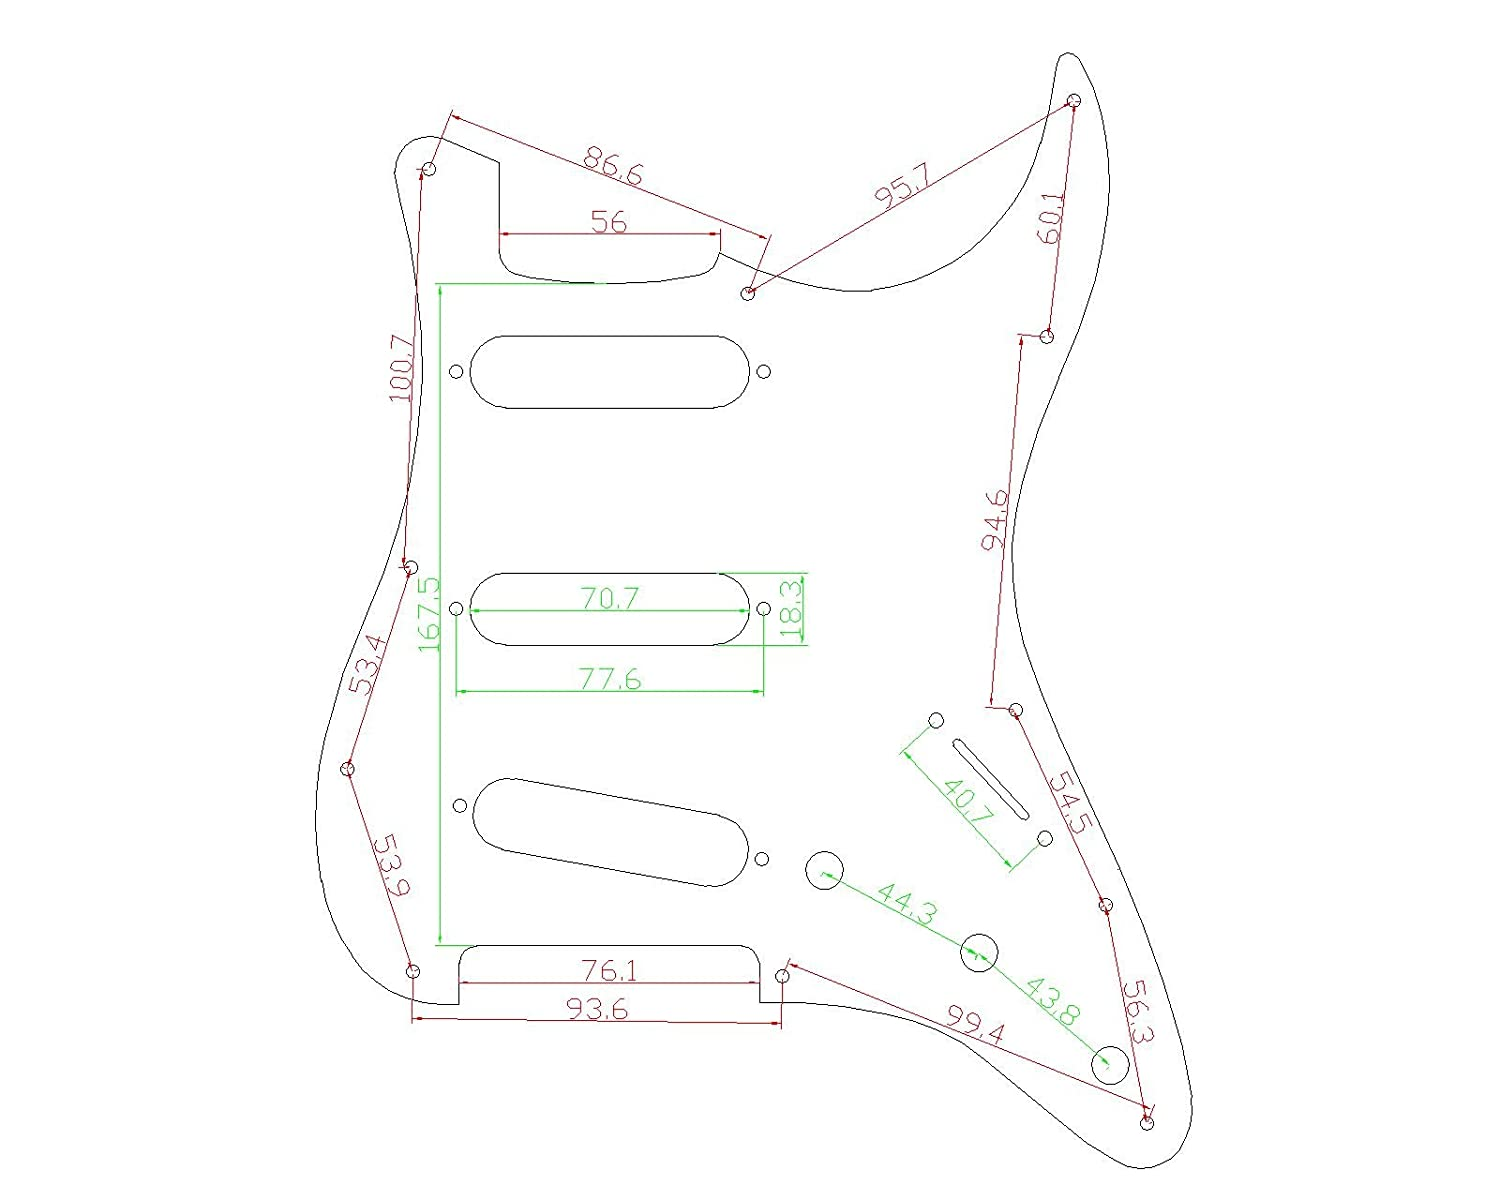 Musiclily 4Ply SSS 11 Holes Strat Electric Guitar Pickguard for Fender US//Mexico Made Standard Stratocaster Modern Style Guitar Parts,Yellow Black